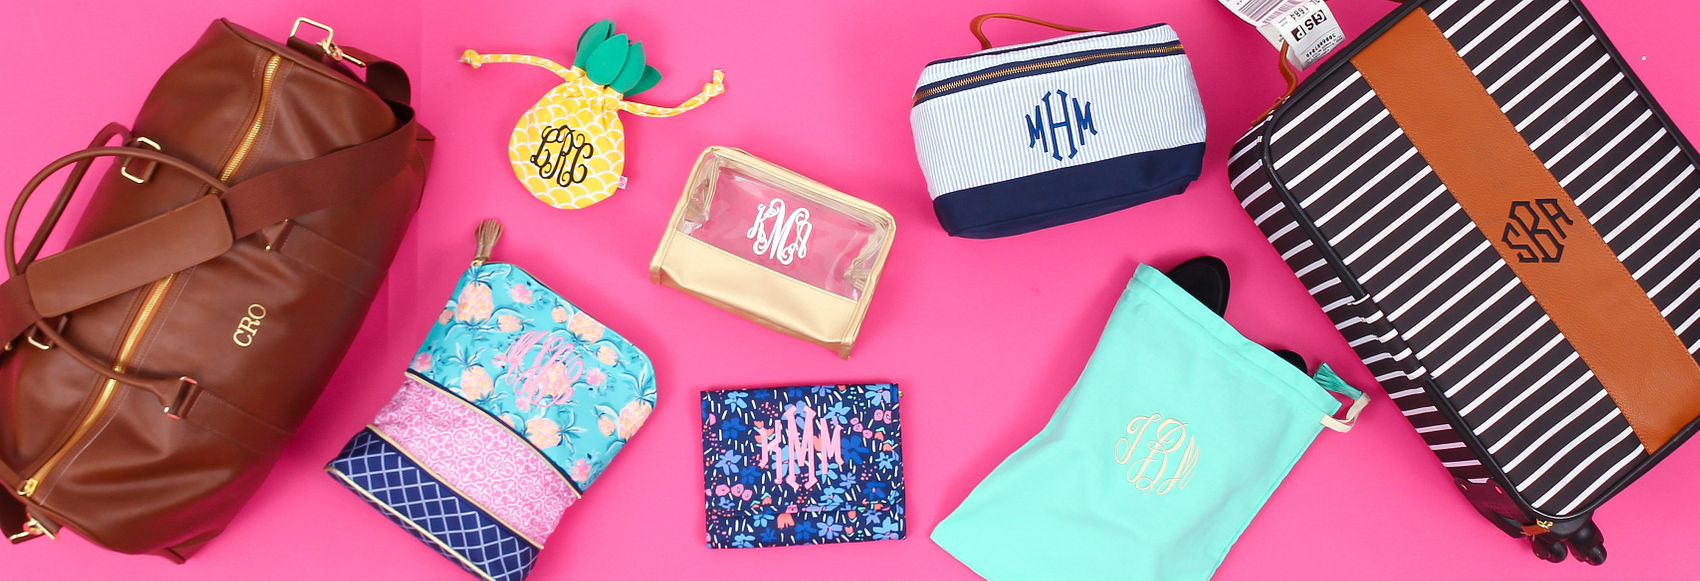 monogrammed travel bags, luggage bags, cute luggage